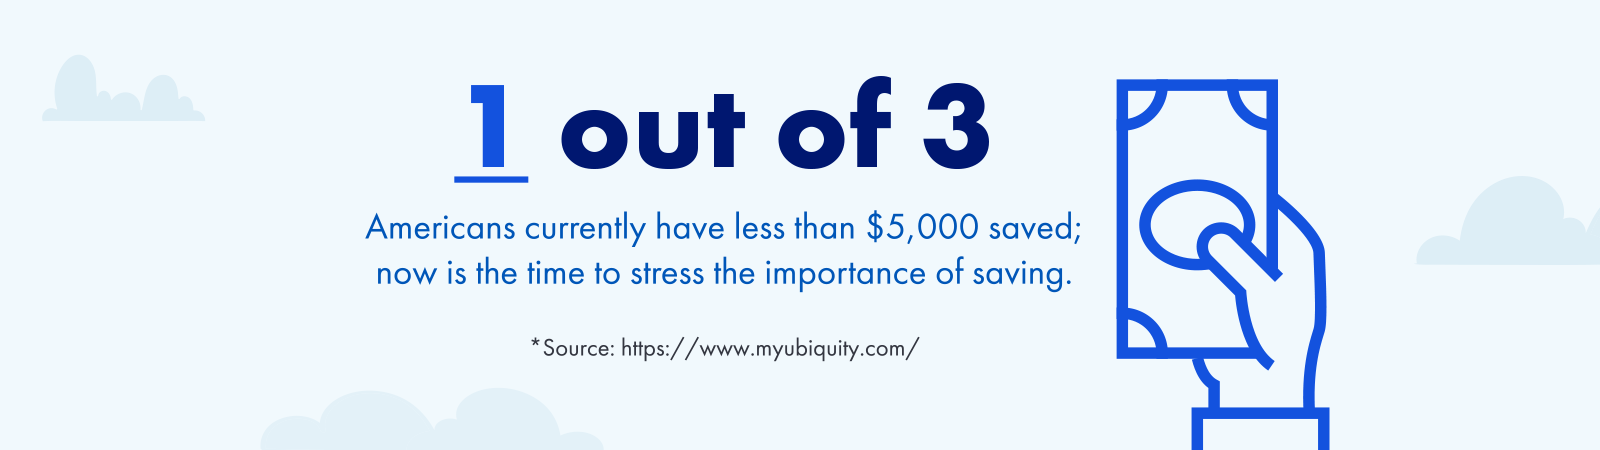 Americans currently have less than 5000 saved; now is the time to stress the importance of savings*